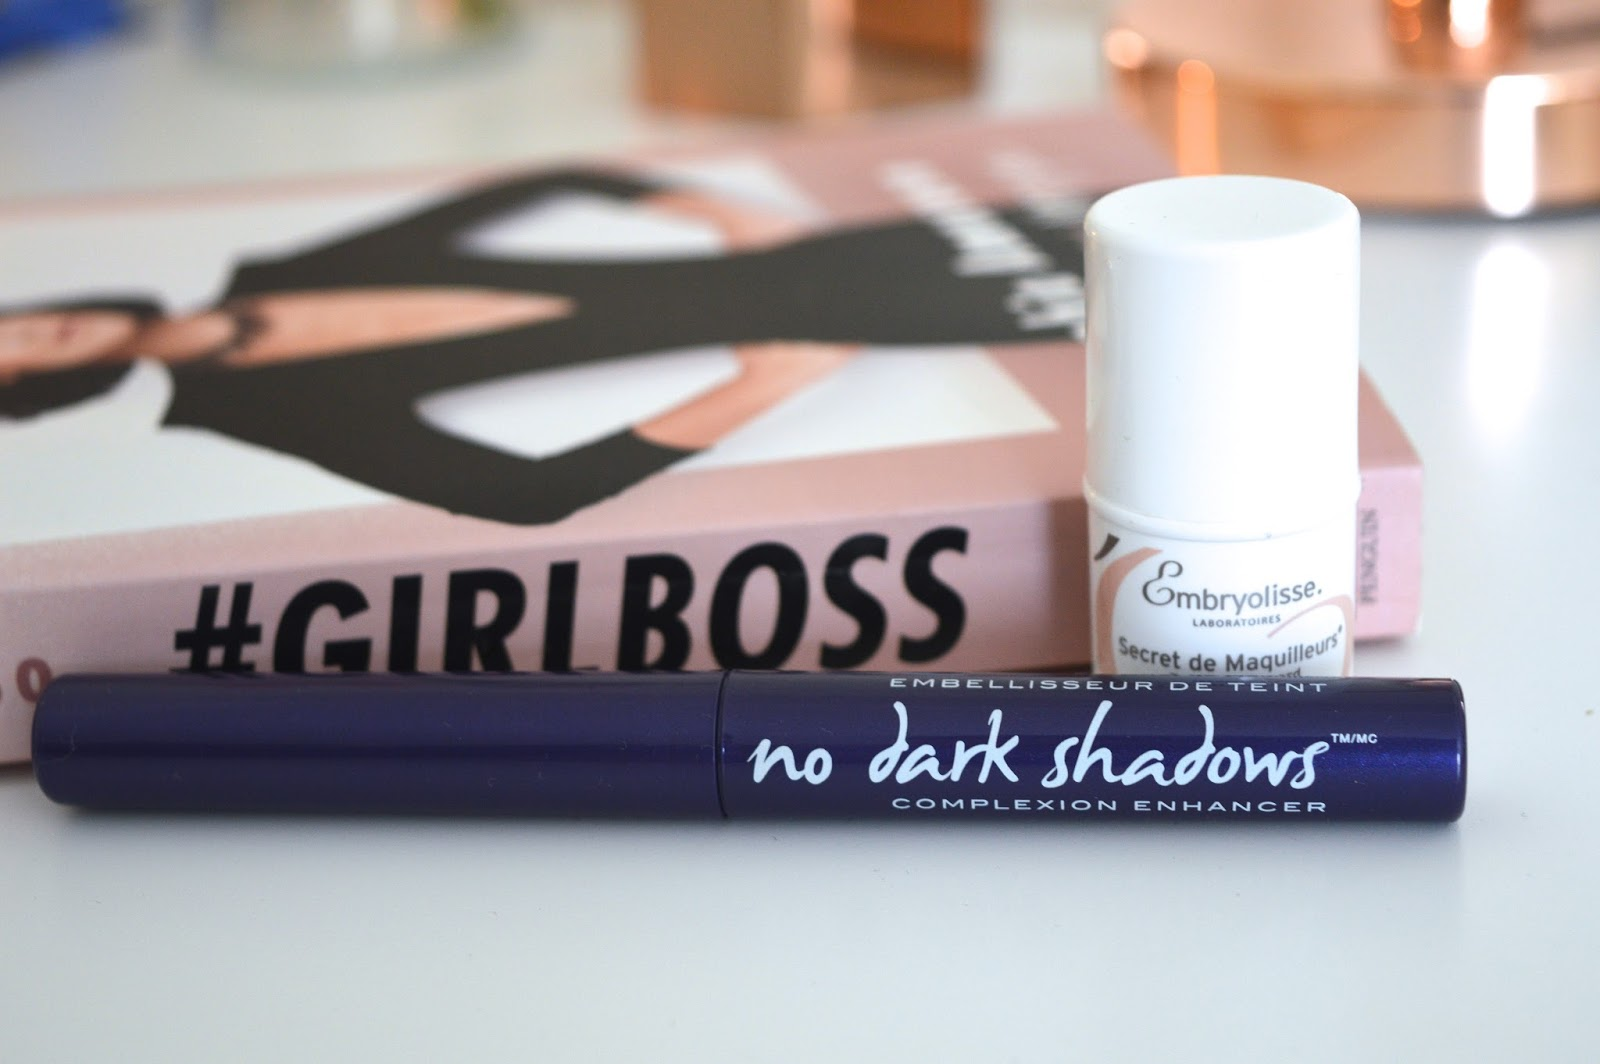 No Dark Shadows concealer review, how to hide dark shadows under eyes, beauty blog UK